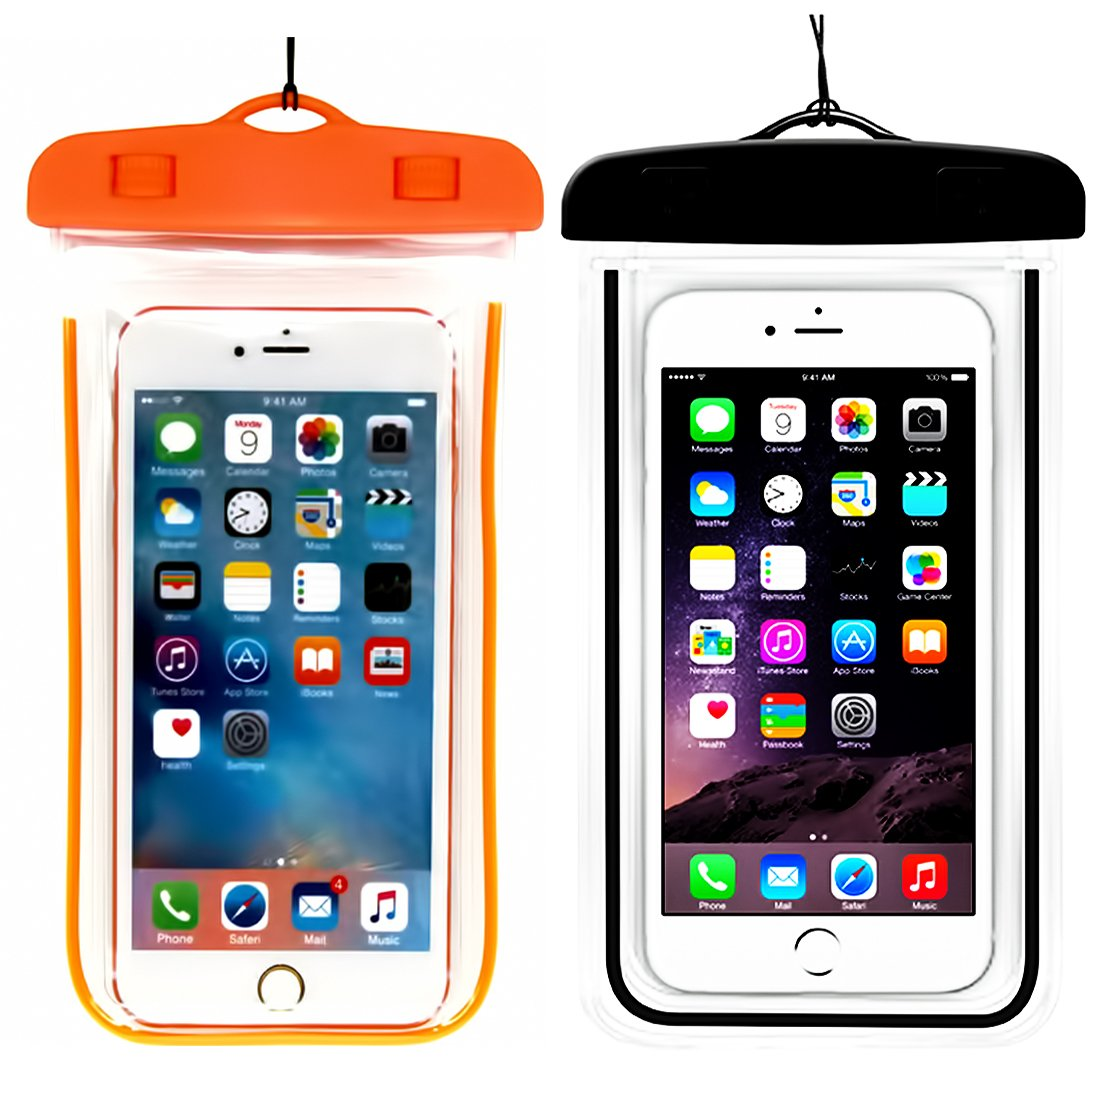 (2Pack) Waterproof Case, CaseHQ Universal IPX8 Waterproof Phone Pouch Underwater Phone Case Bag Neck Strap for iPhone X/8/8+/7/7+ Galaxy S9/S8/S8/Note 8,Google Pixel/LG/HTC up to 6.0''-black+orange